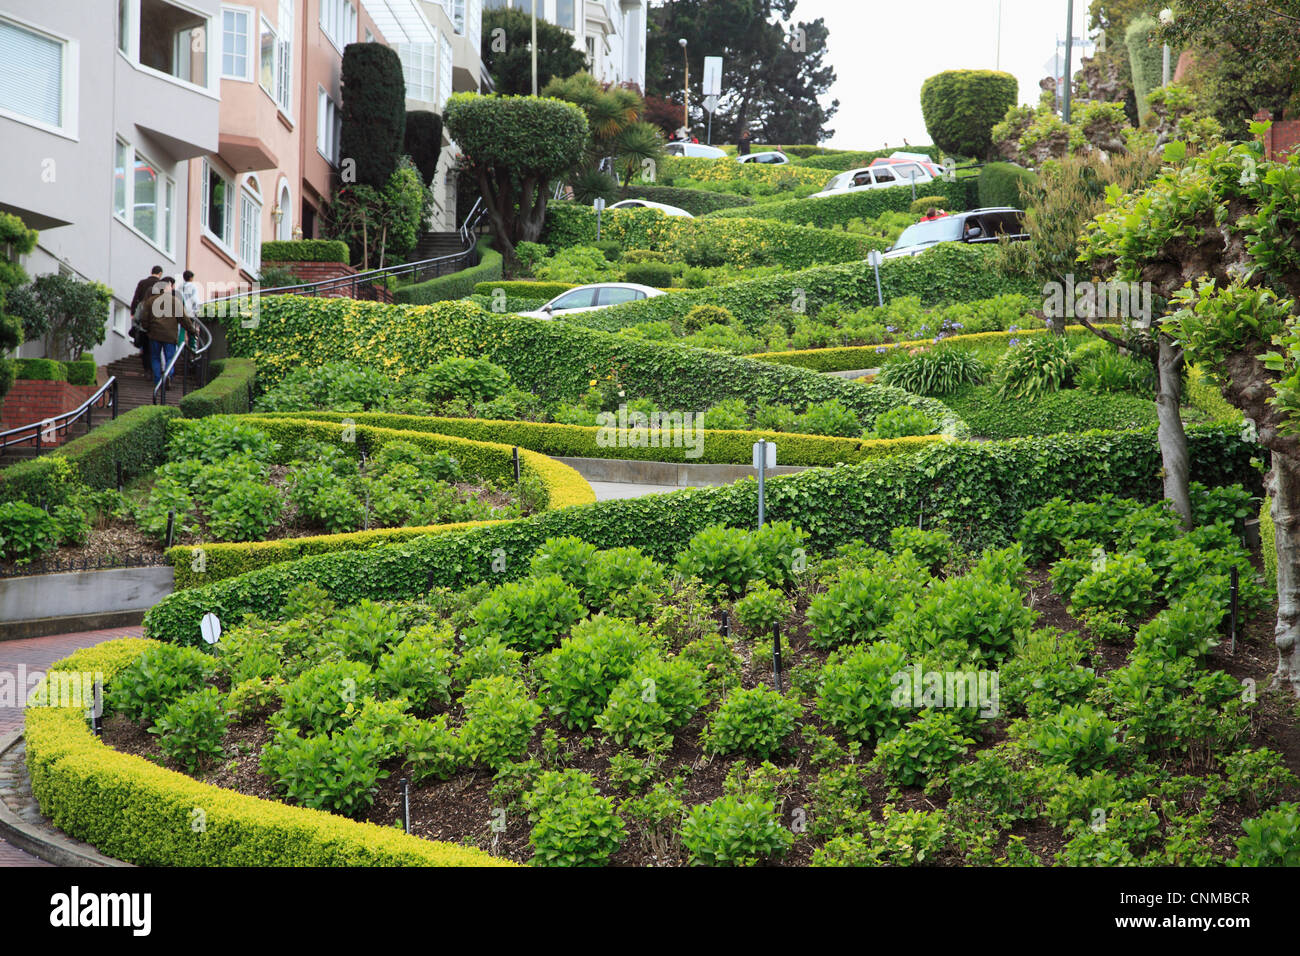 Lombard Street, San Francisco, California, United States of America, North America - Stock Image